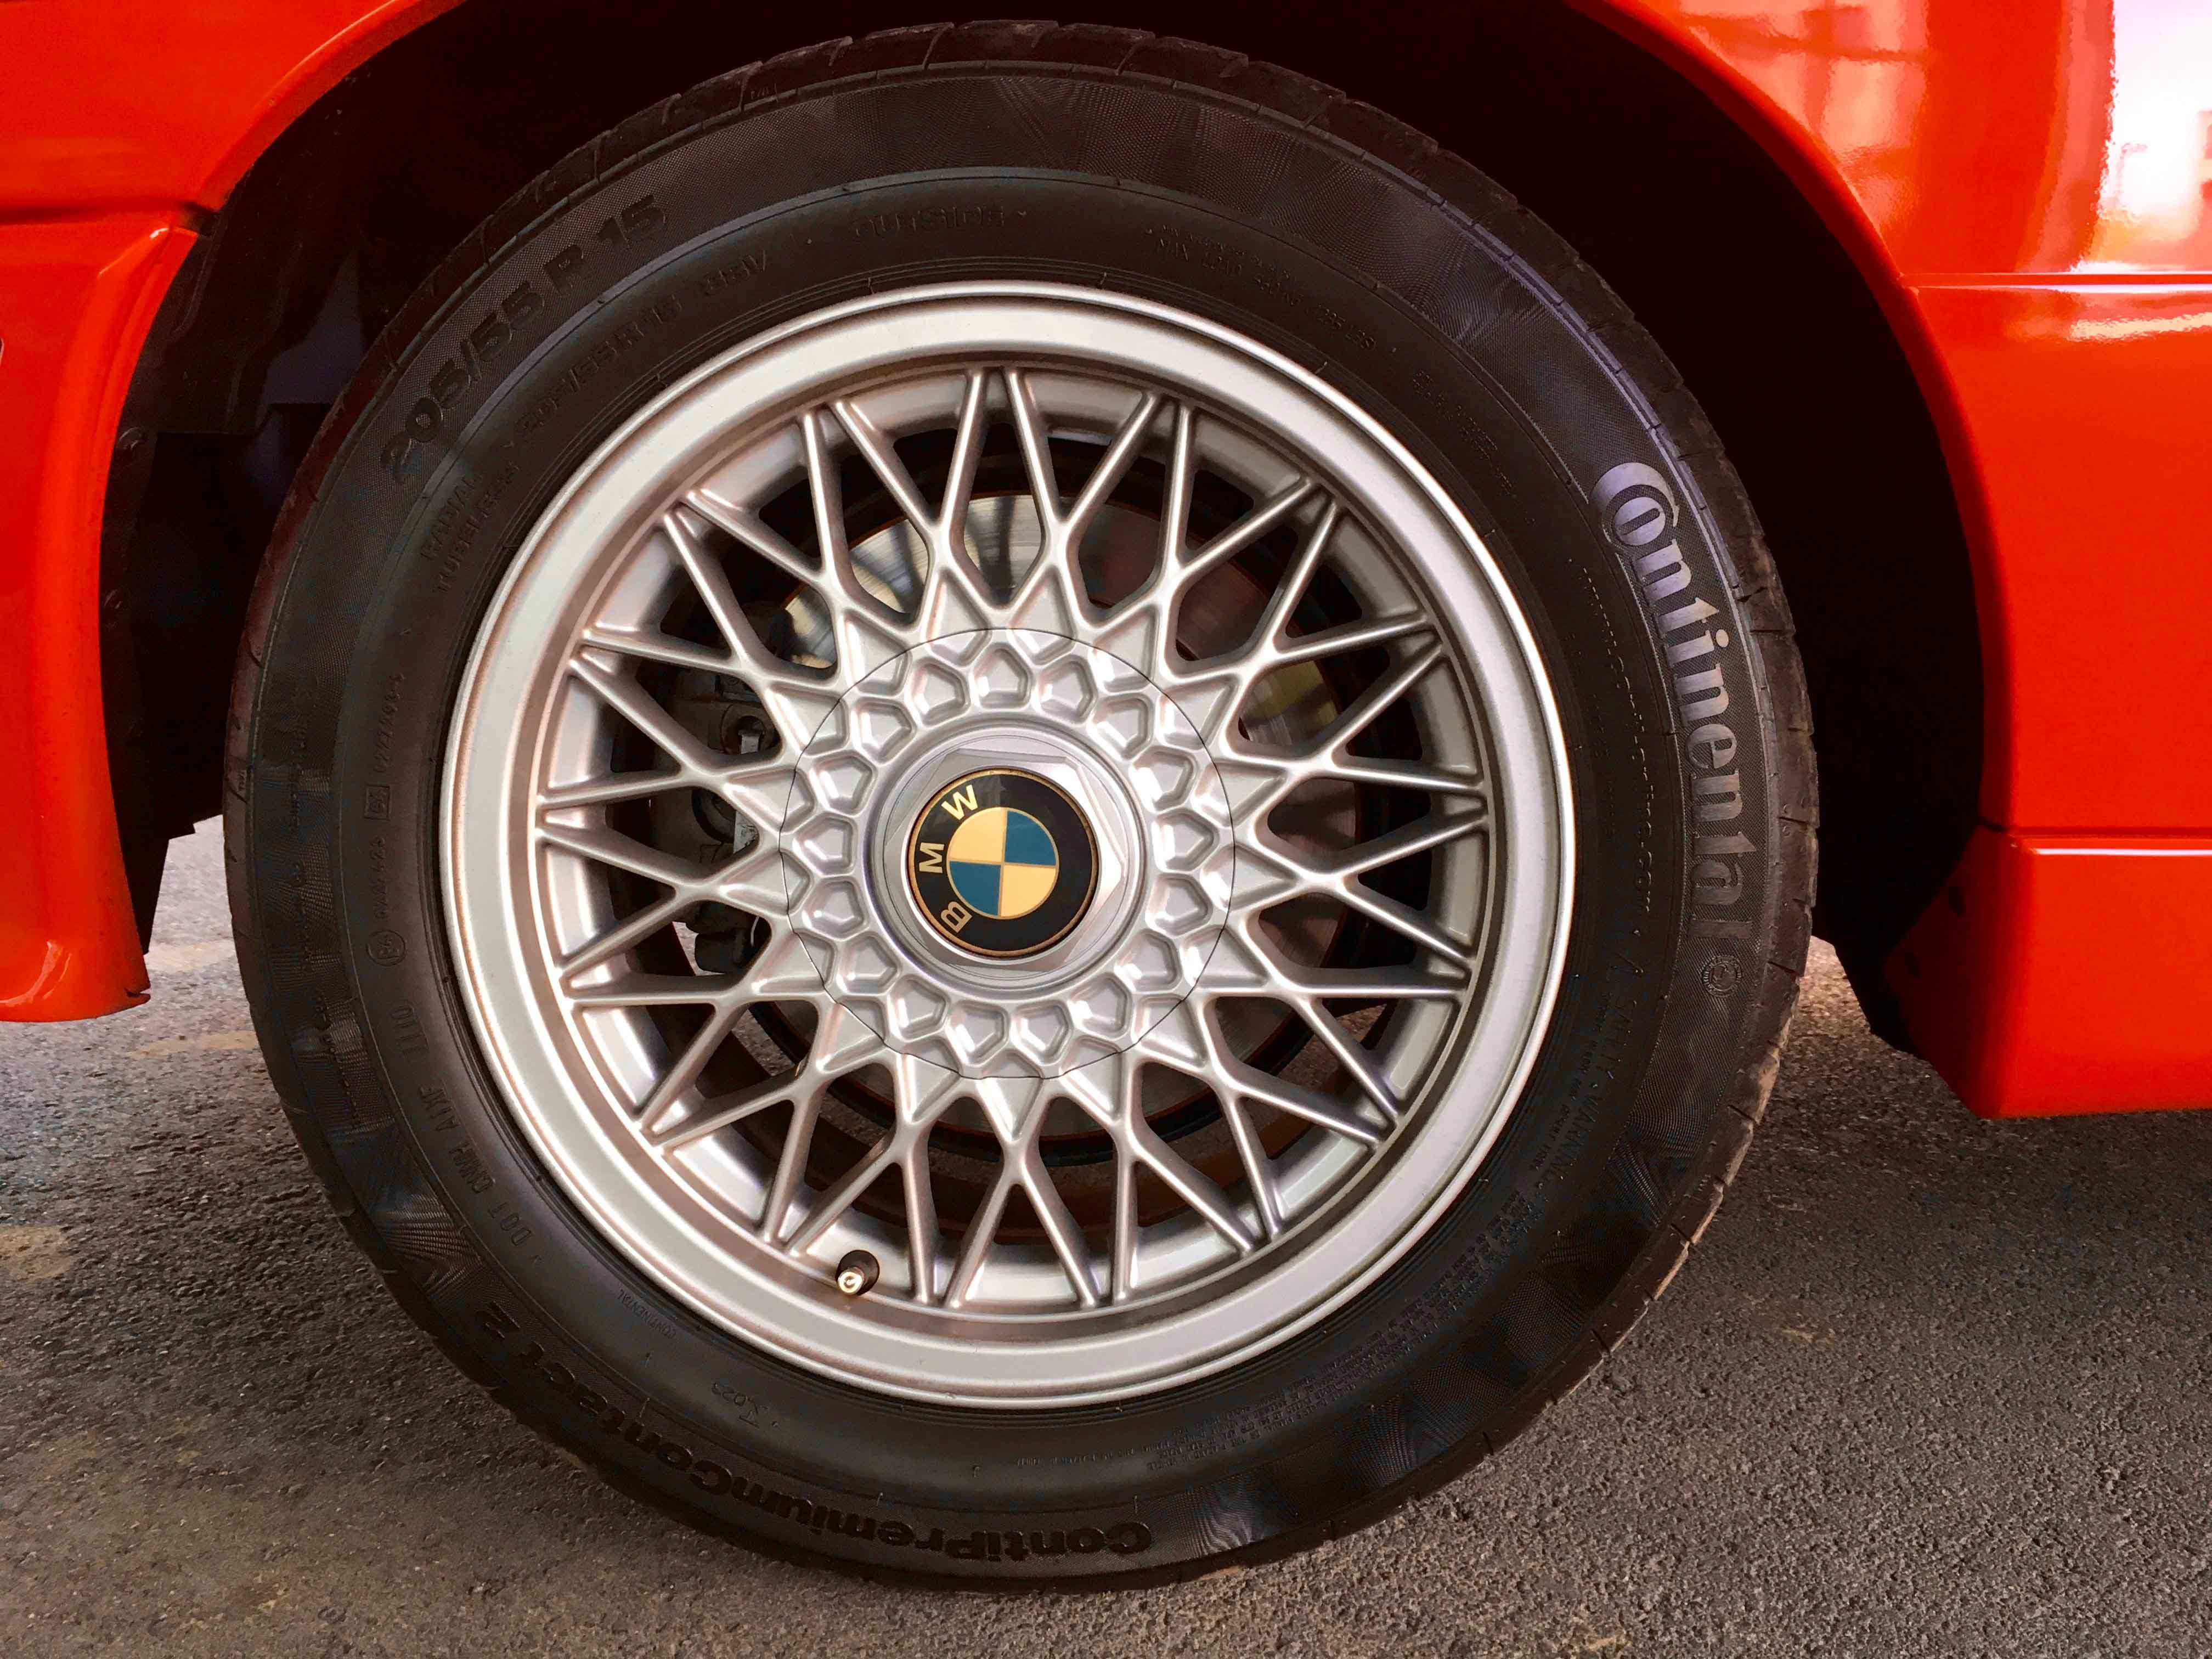 1987 BMW M3 Rear tire and rim